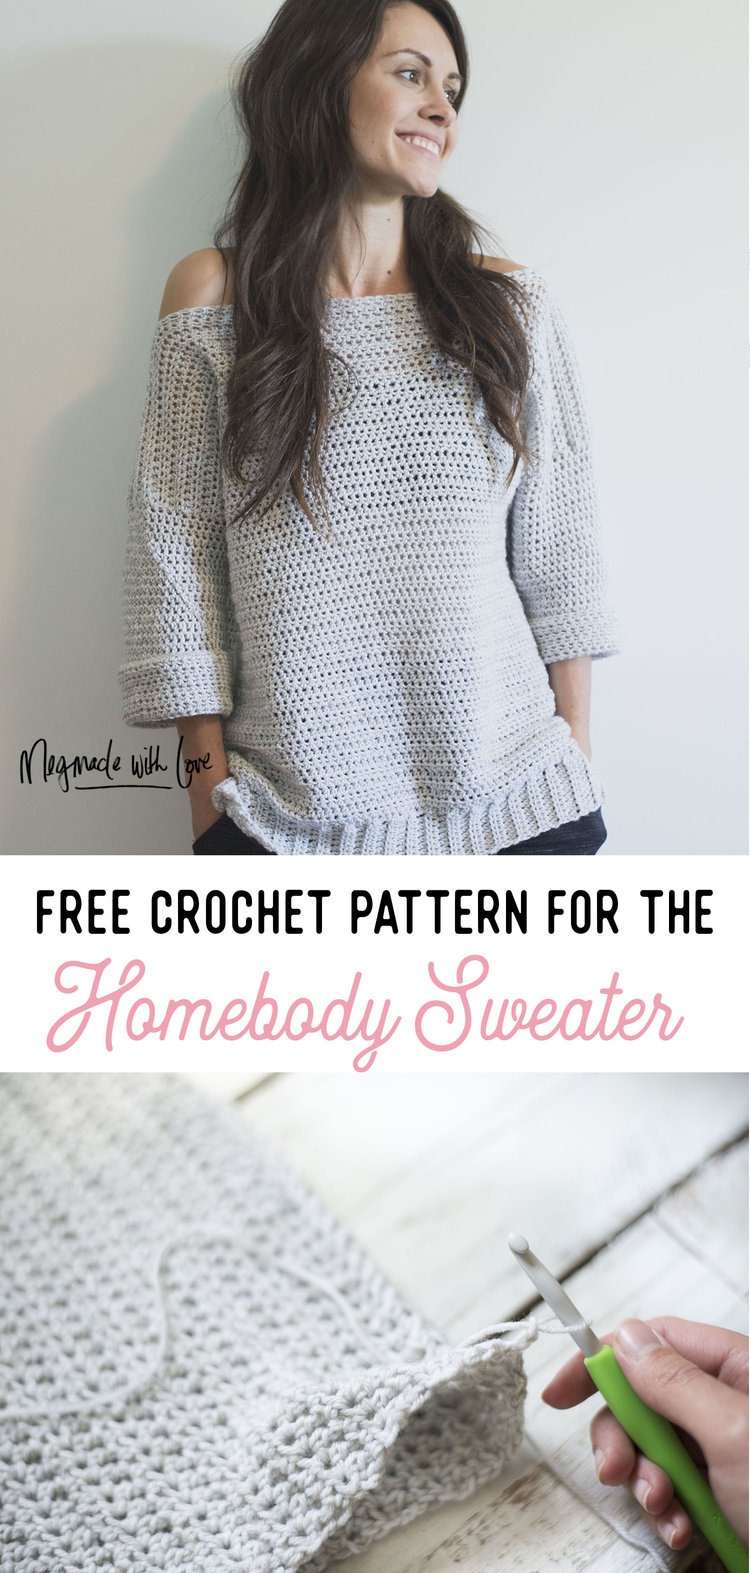 b67a4a6a8f3 Free Crochet Pattern for The Homebody Sweater (Easy, Comfy and Cute ...